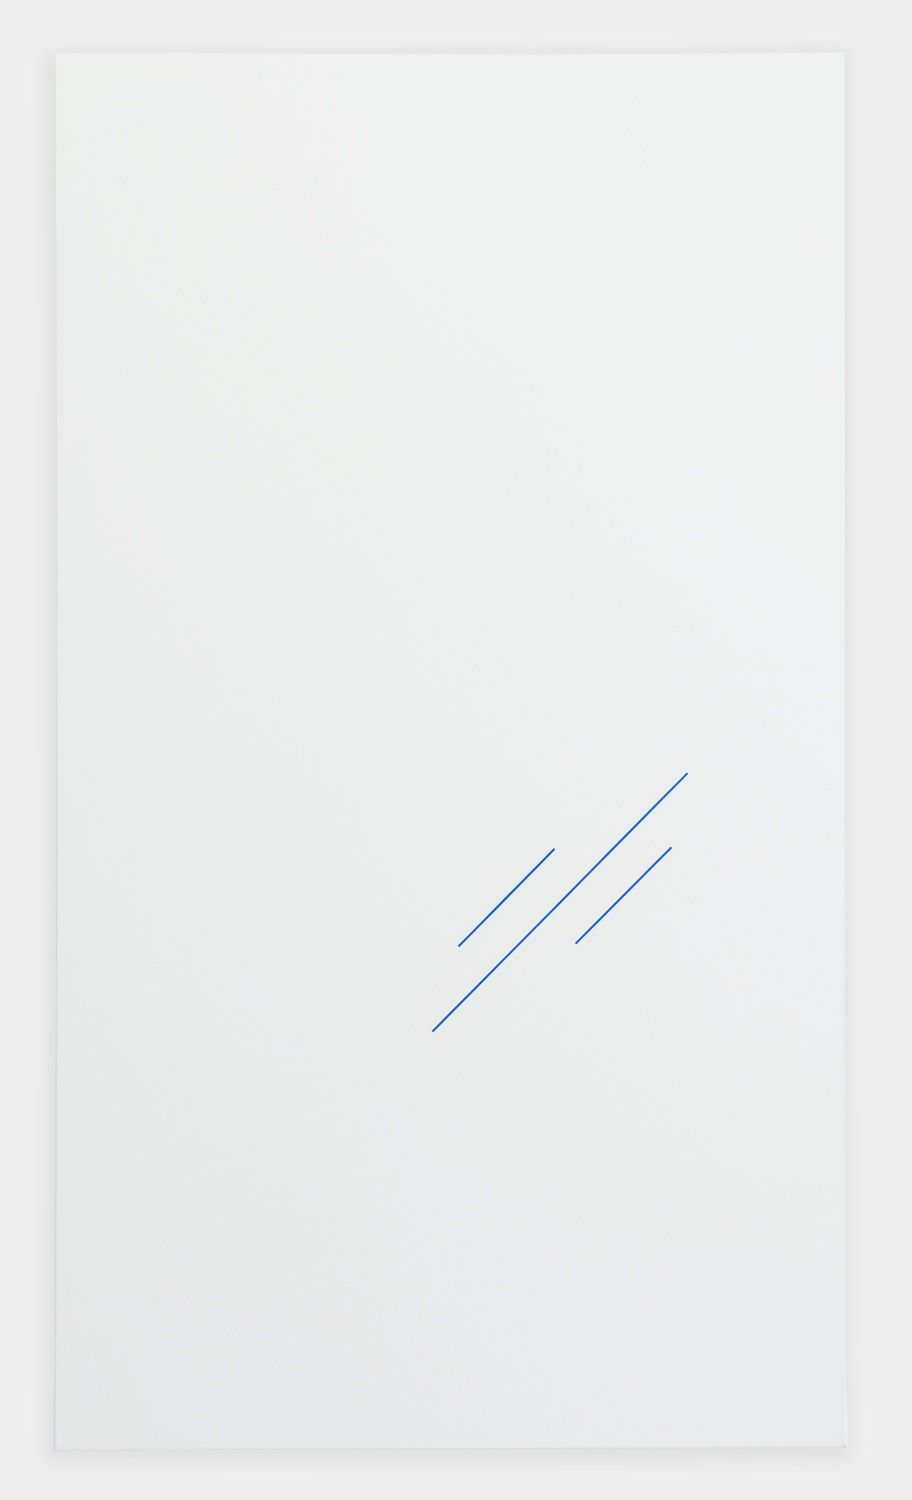 Paul Cowan  BCEAUSE THE SKY IS BULE  2013 Chroma-key Blue Paint On Canvas 72h x 41w in  PC084